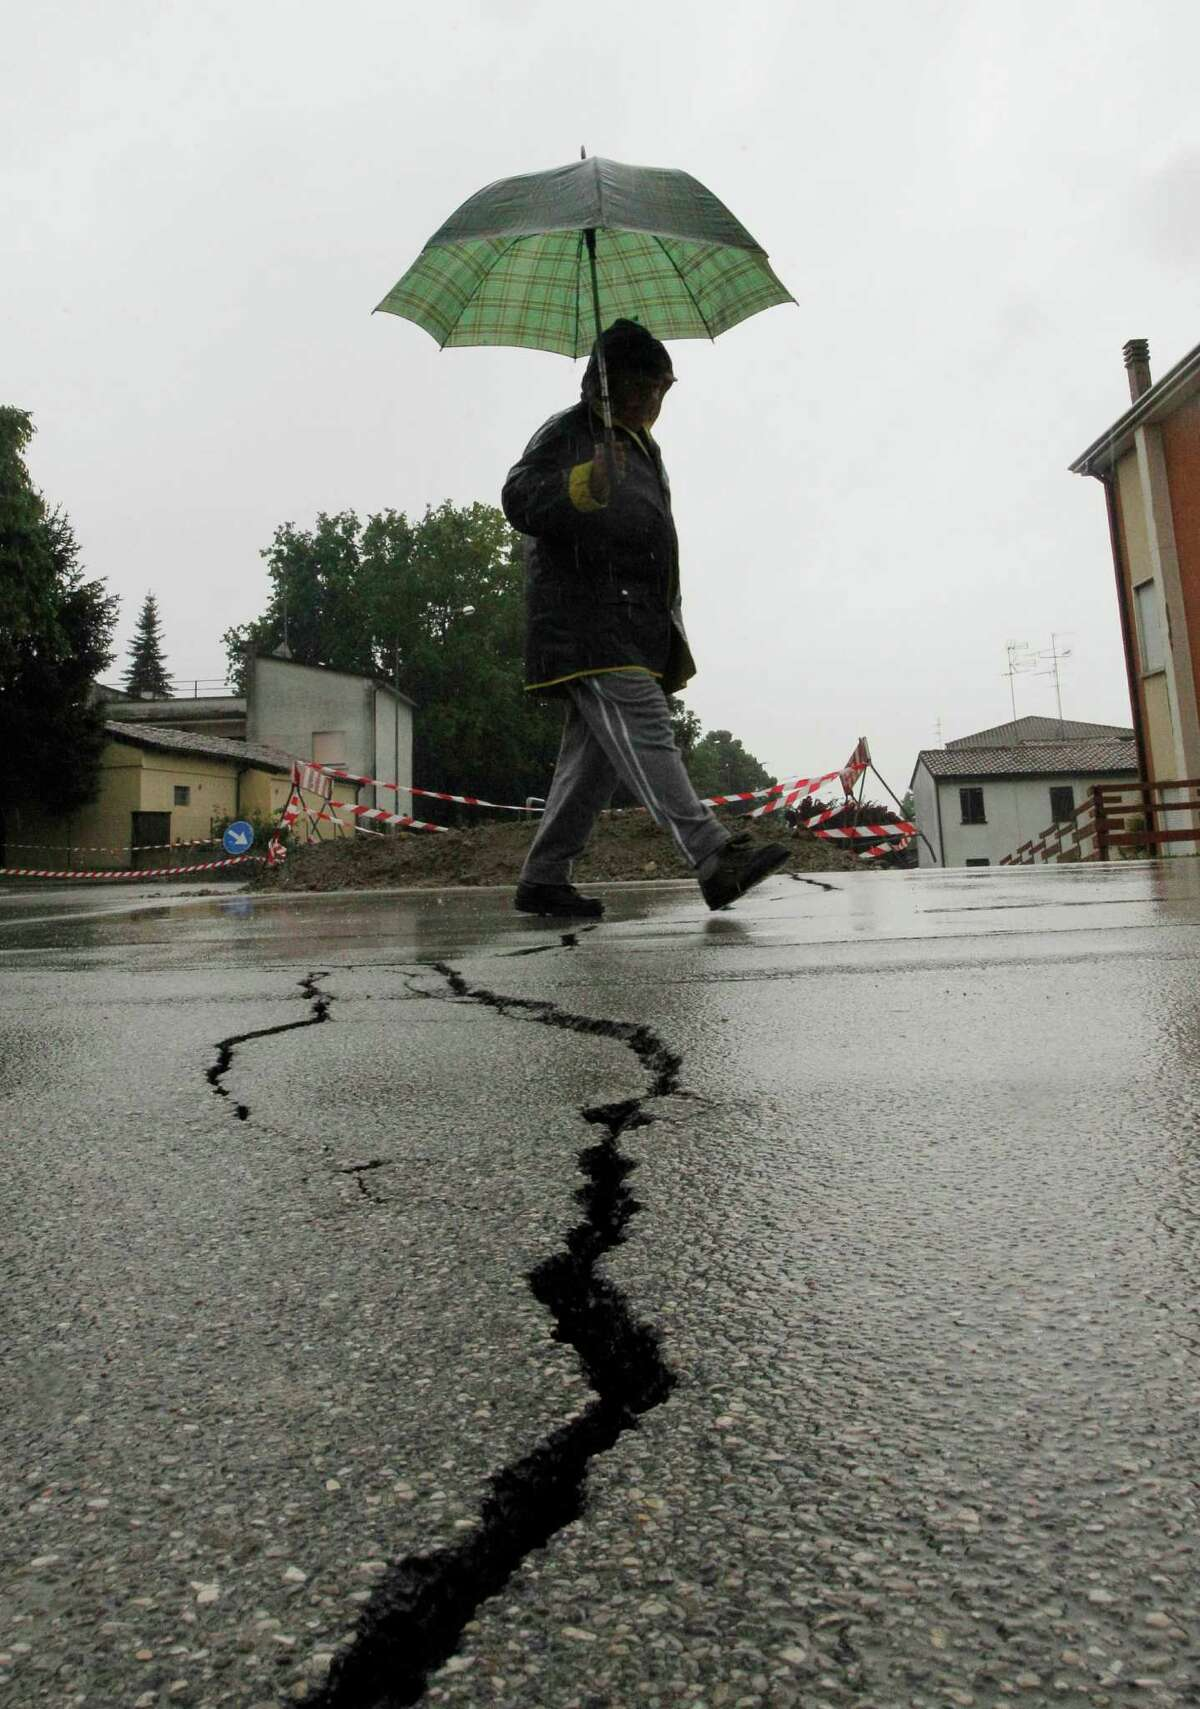 A man walks over a crack that opened in a street in San Carlo, Italy, Monday. A magnitude-6.0 earthquake shook northern Italy early Sunday, killing at least three people and toppling some buildings, emergency services and news reports said. The quake struck at 4:04 a.m. Sunday between Modena and Mantova, about 22 miles)north-northwest of Bologna at a relatively shallow depth of 6 miles, the U.S. Geological Survey said. (AP Photo/Luca Bruno)